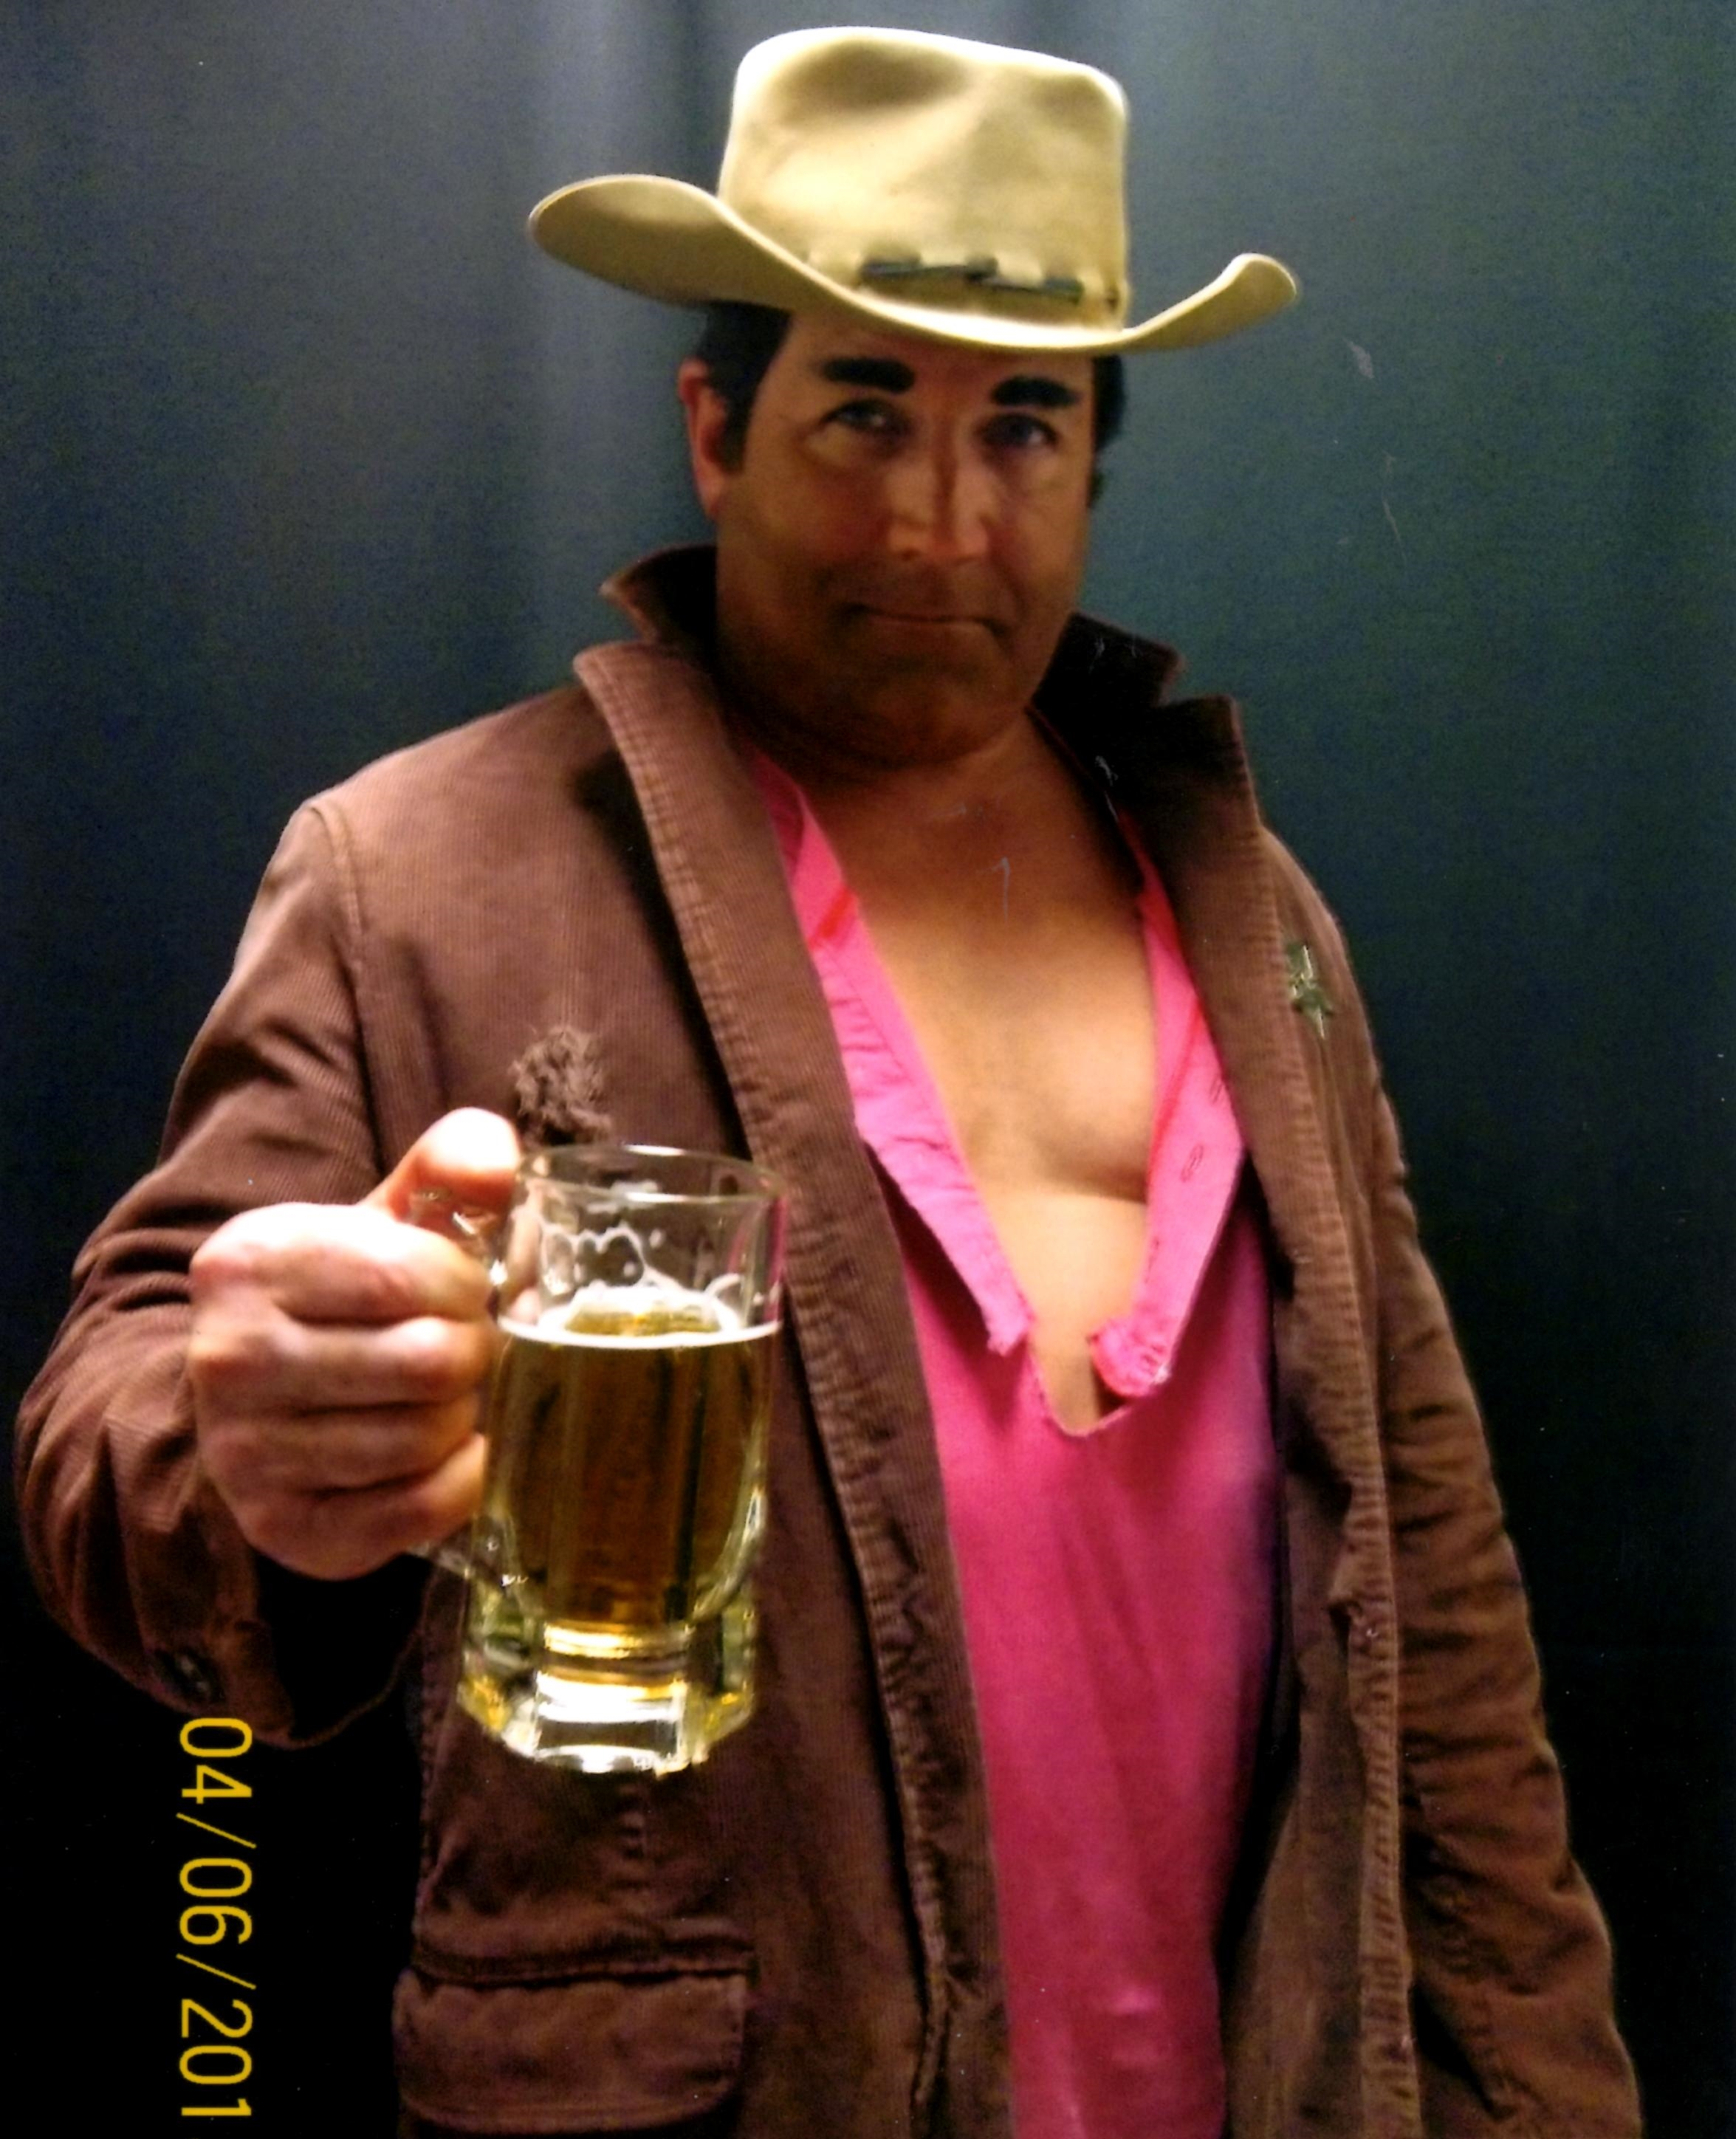 Matt Helm as DUDE from Rio Bravo